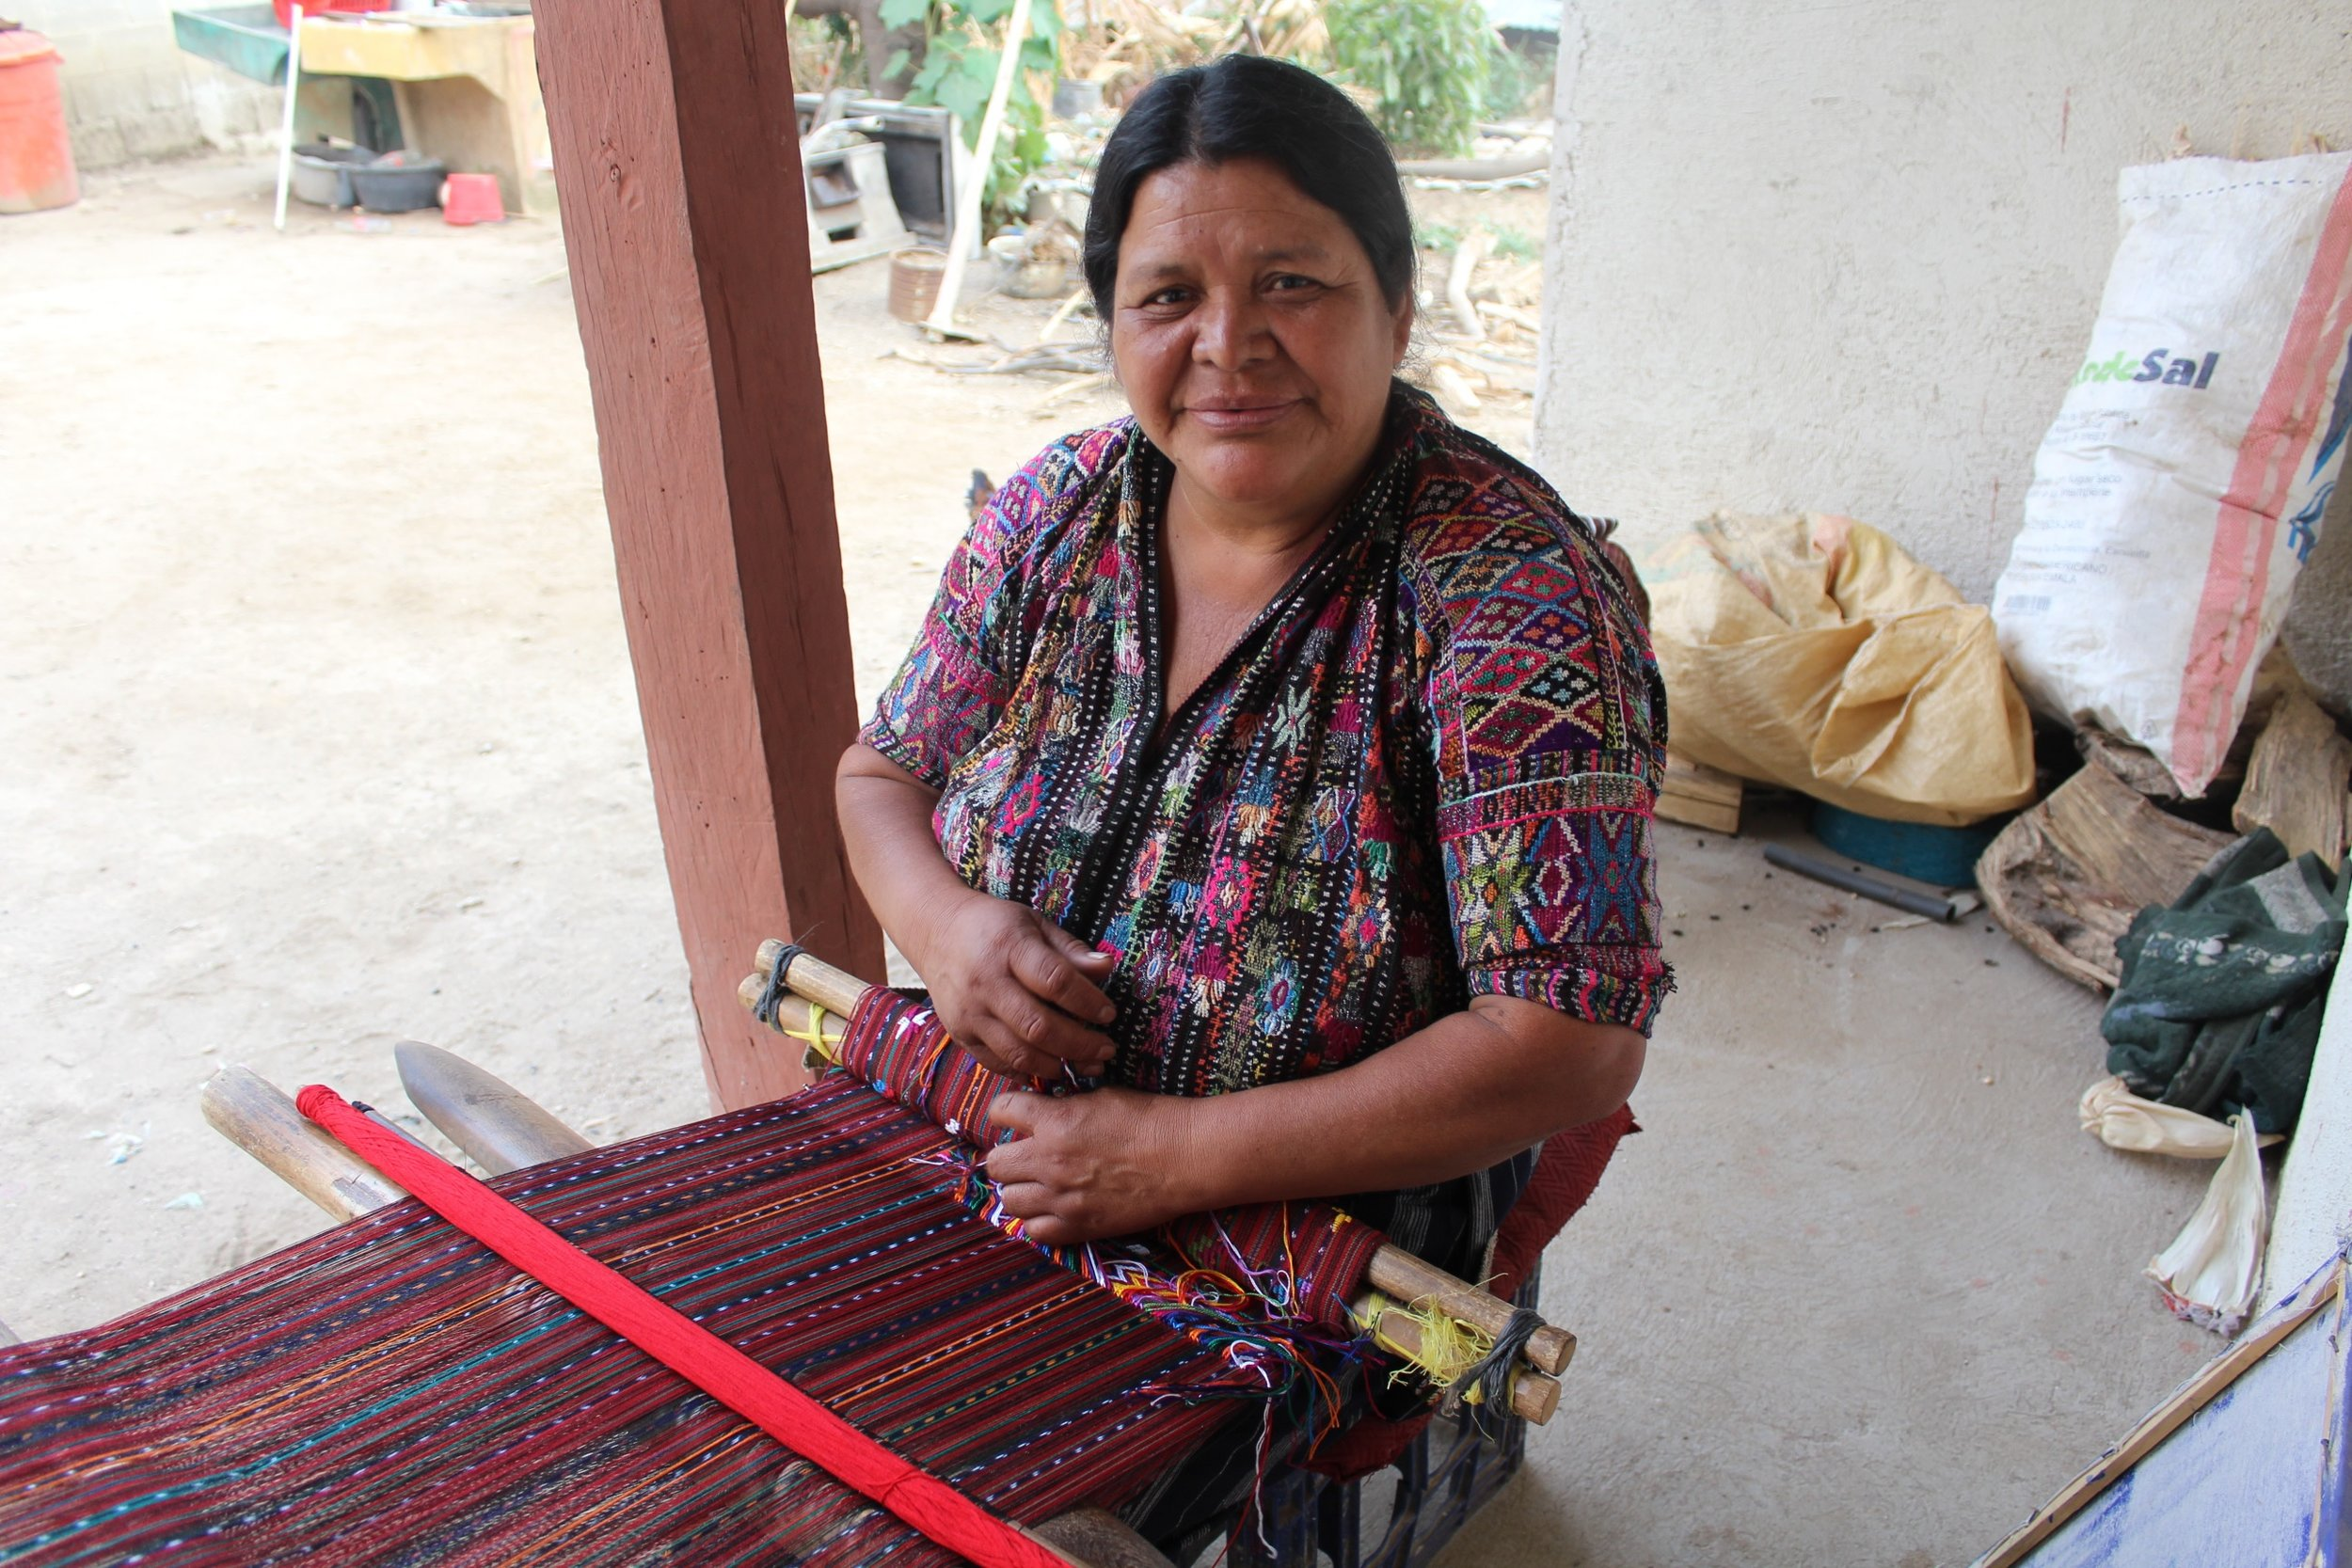 Francisca Tun - Monte Mercedes, Sololá - Friendship Bridge's client for 14 loan cycles.With her strong presence and motivation, Francisca is pleased to be one of our featured artisans. Along with two employees, she weaves both table runners and bookmarks on her backstrap loom.